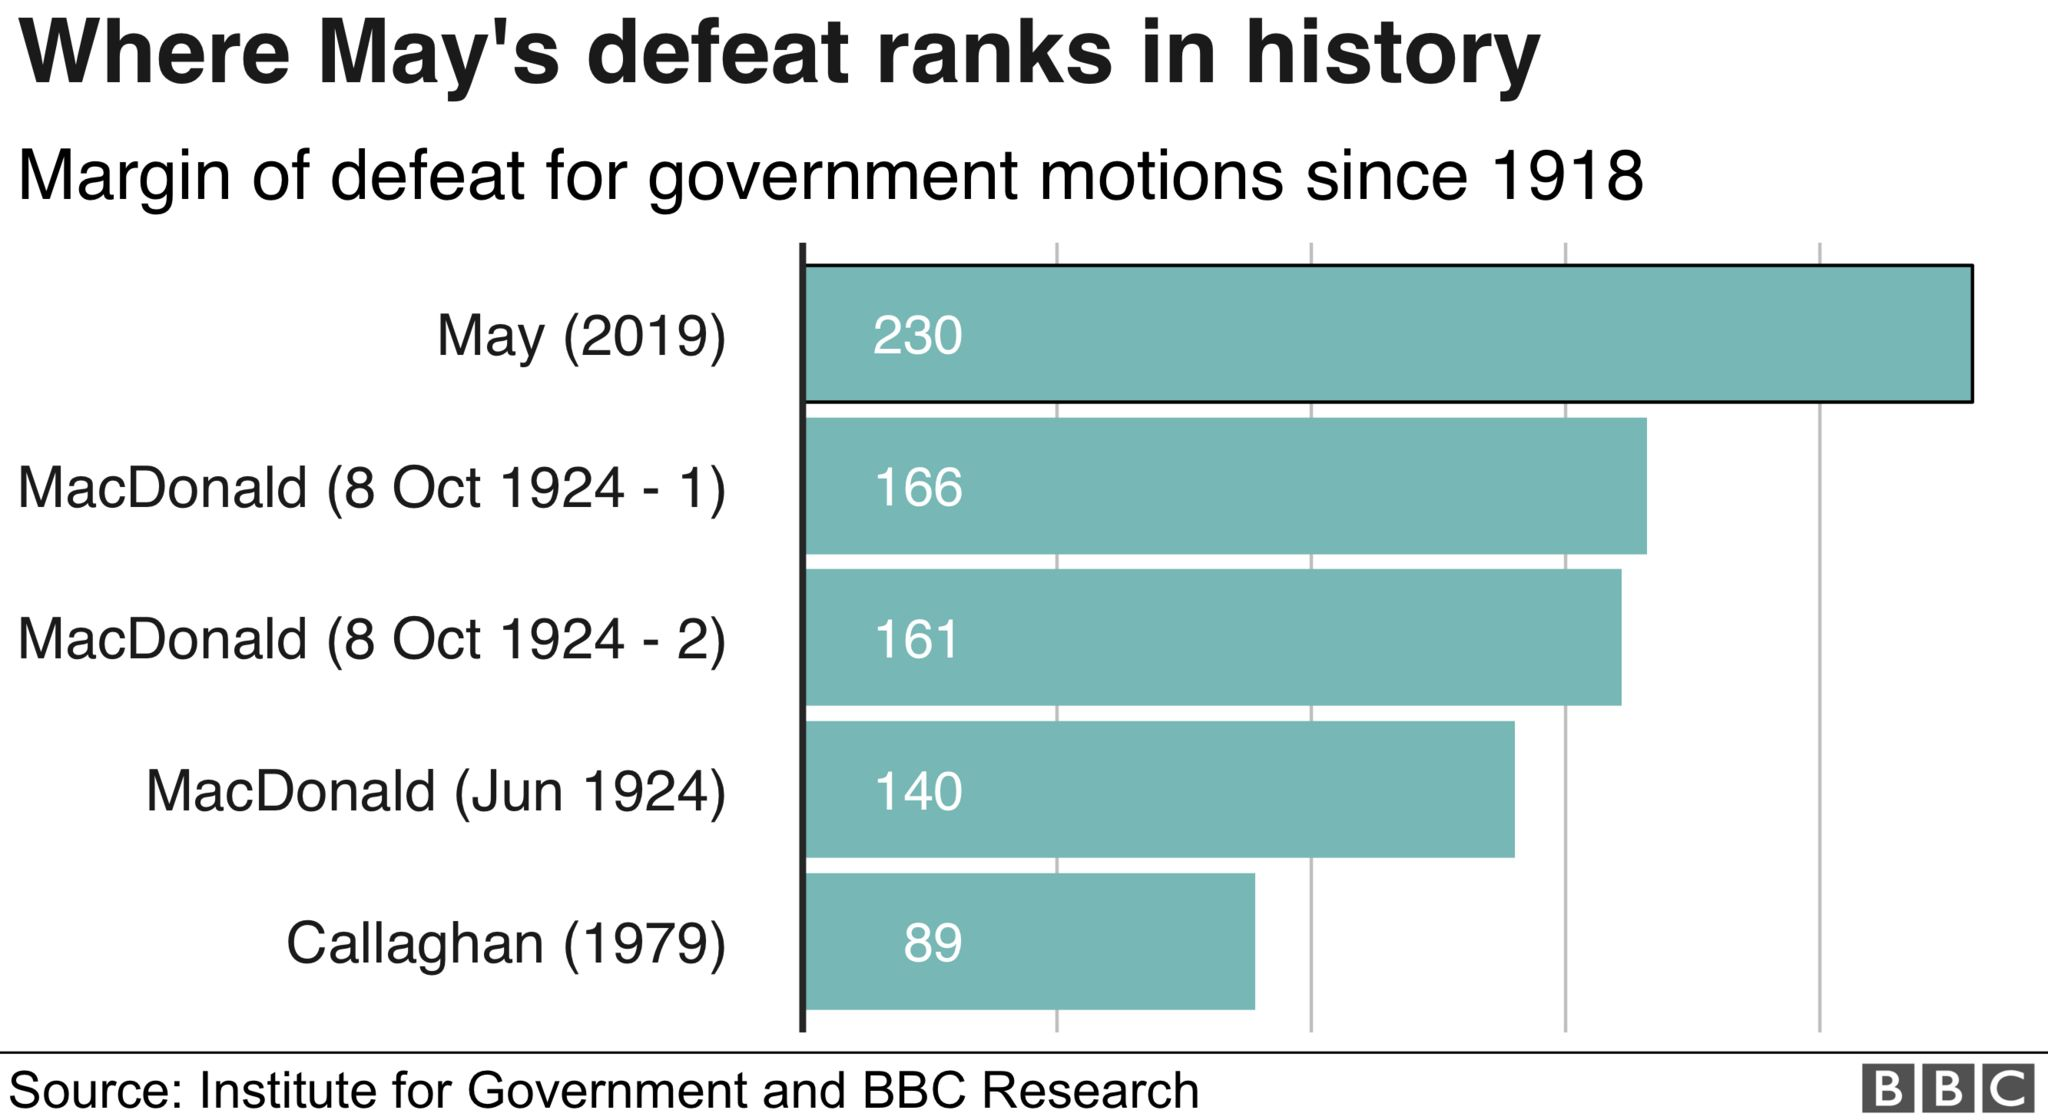 May's defeat ranks as the biggest in history